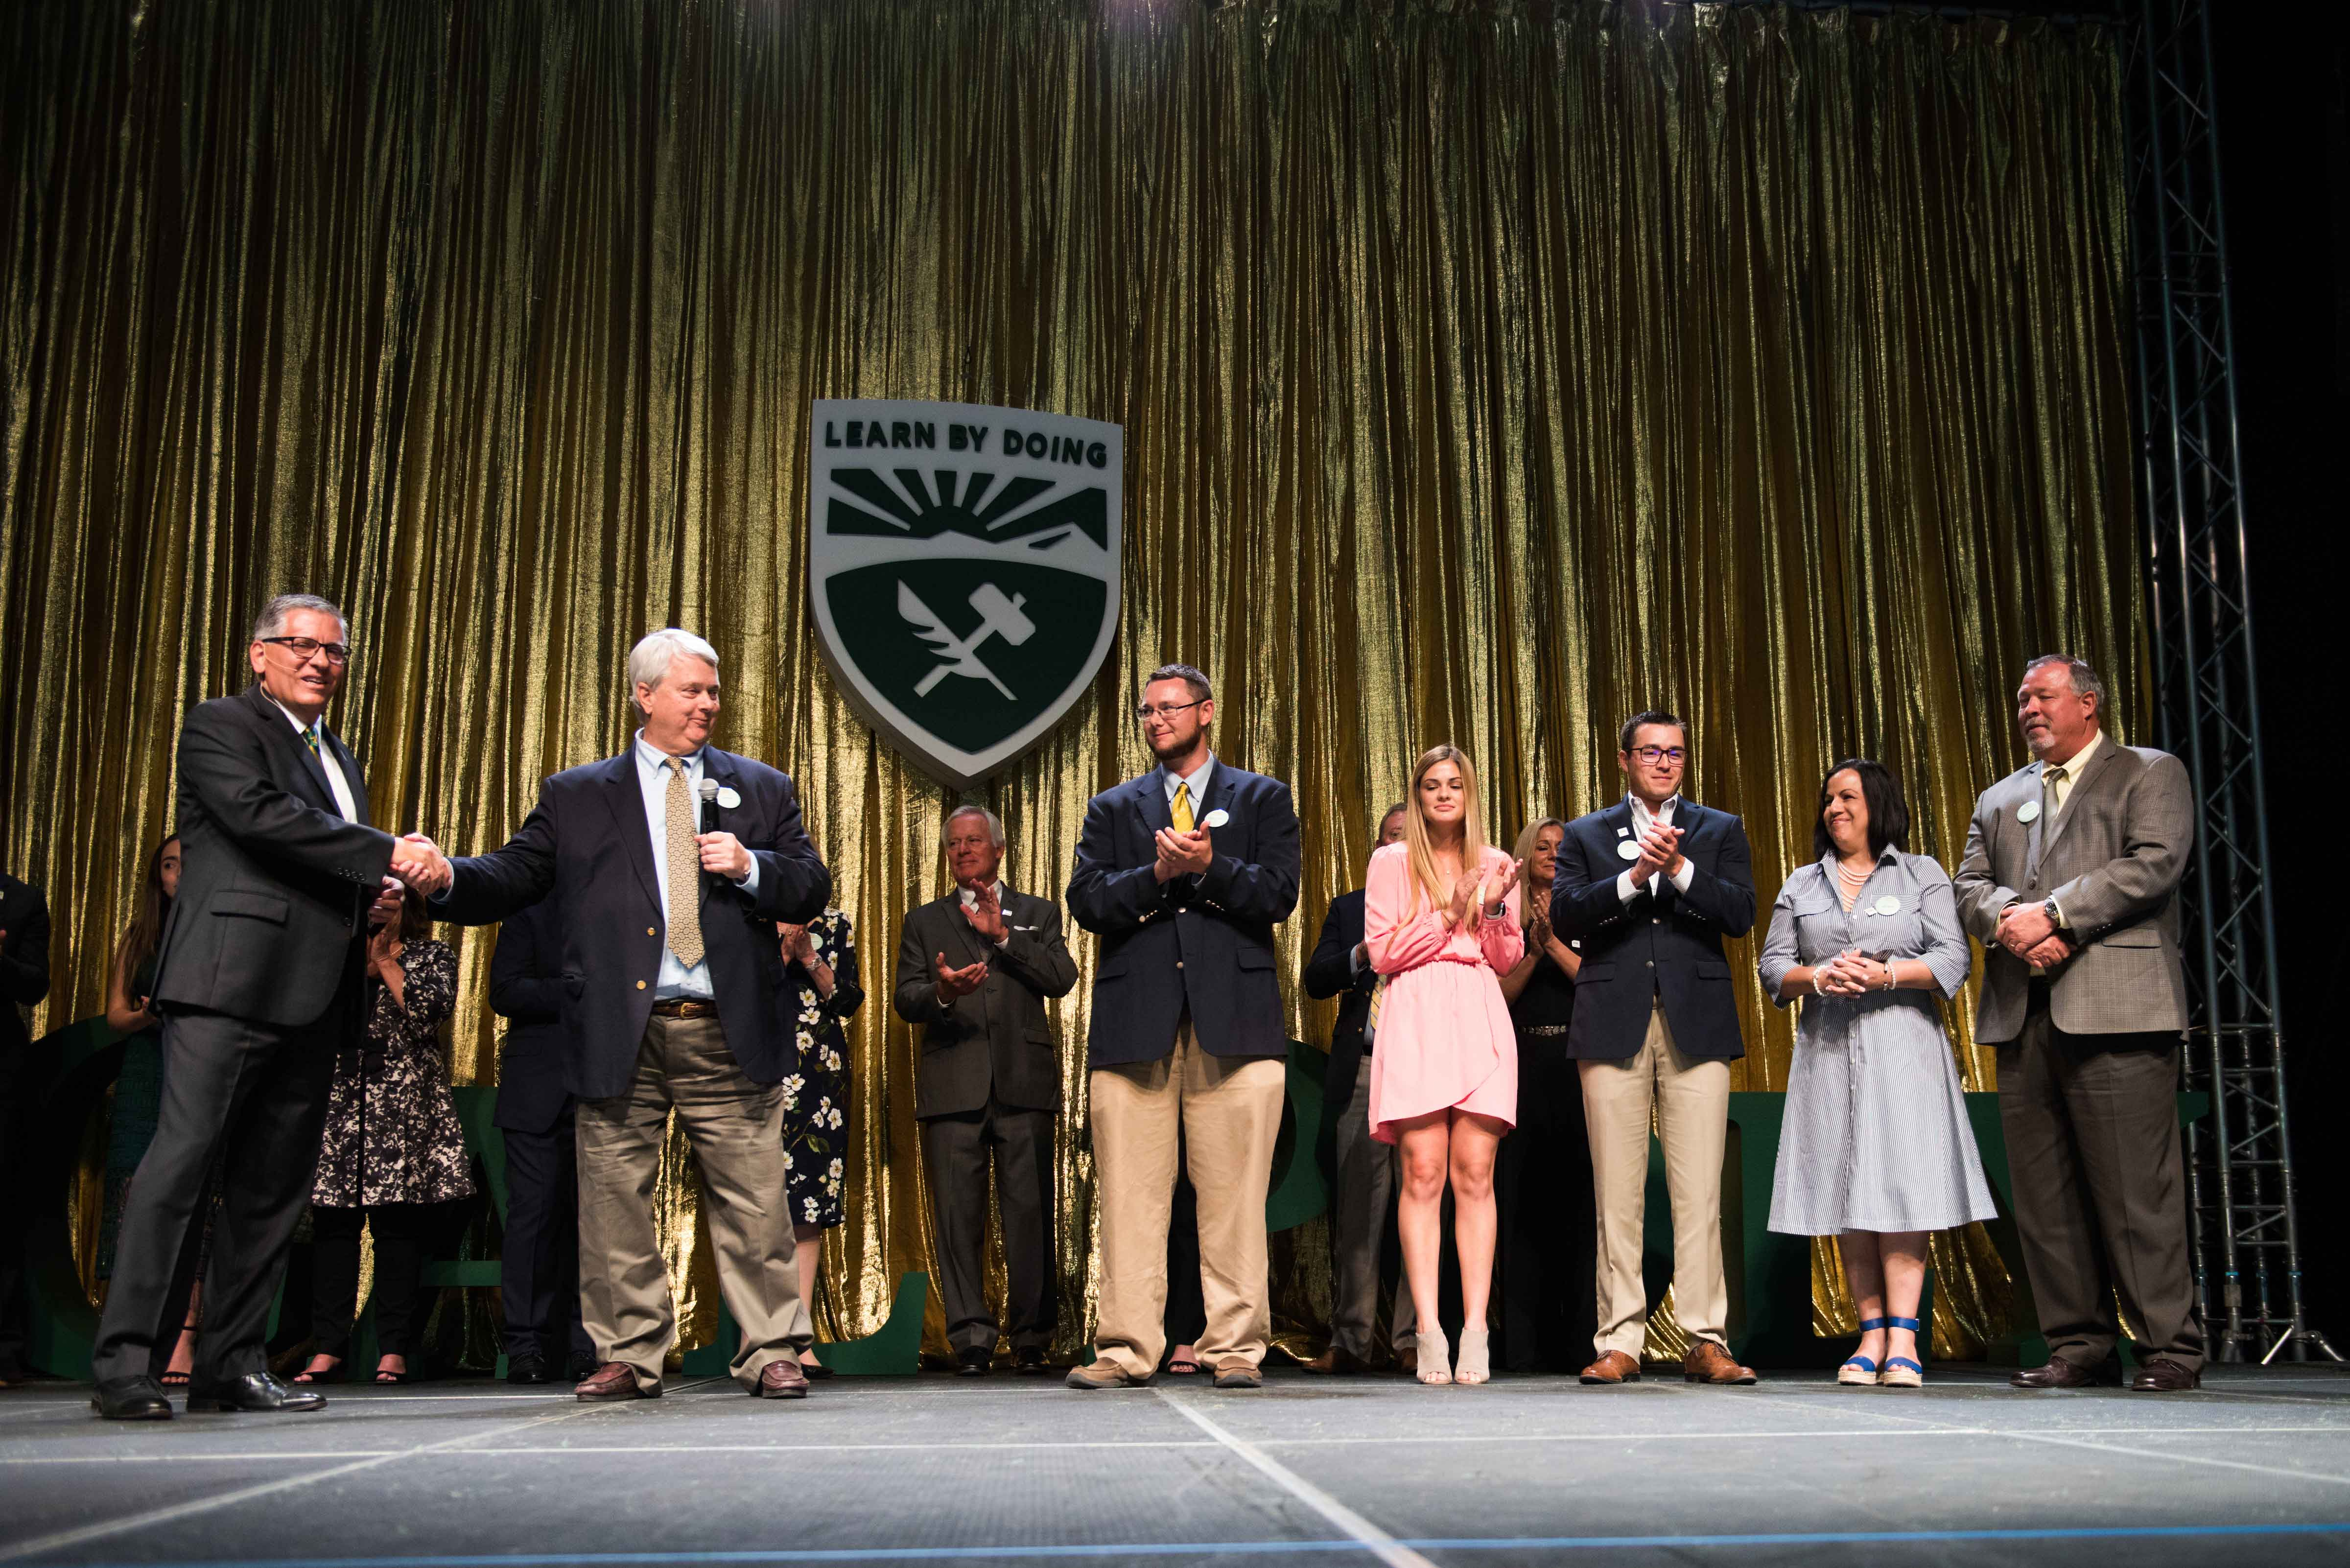 Cal Poly President Jeffrey D. Armstrong, James Boswell, John Ronca, Cameron Boswell, Bridget Dias, Cody Boswell, Catherine Wurzel, and George Wurzel, during the announcement of the Boswells' $10 million gift made in honor of George Wurzel. The George Wurzel Plant Sciences Building will include classrooms and labs and will be adjacent to greenhouses, processing facilities and a farmers' market. The building will unite multiple disciplines to focus and enhance work in plant, earth and soil sciences along with agricultural engineering in one state-of-the-art complex.